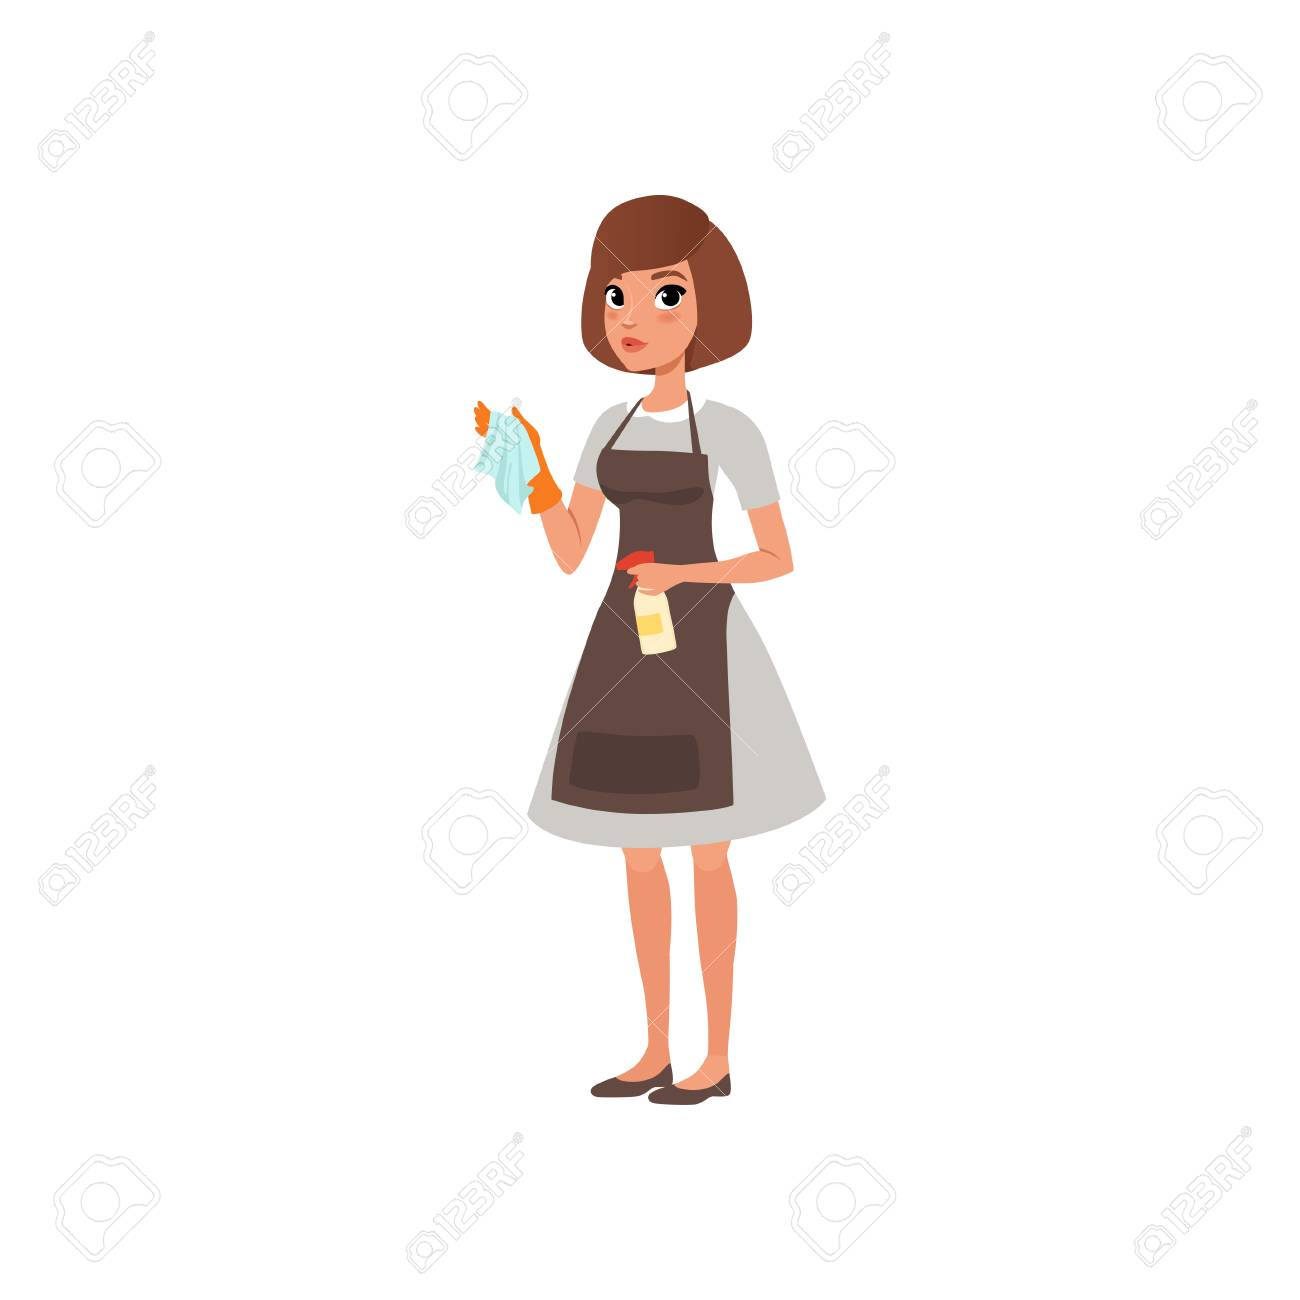 Cartoon woman character holding rag and spray bottle with cleaning liquid. Hotel maid service. Domestic worker. Girl in gray dress, brown apron and orange glove. Flat vector design isolated on white. - 93380119